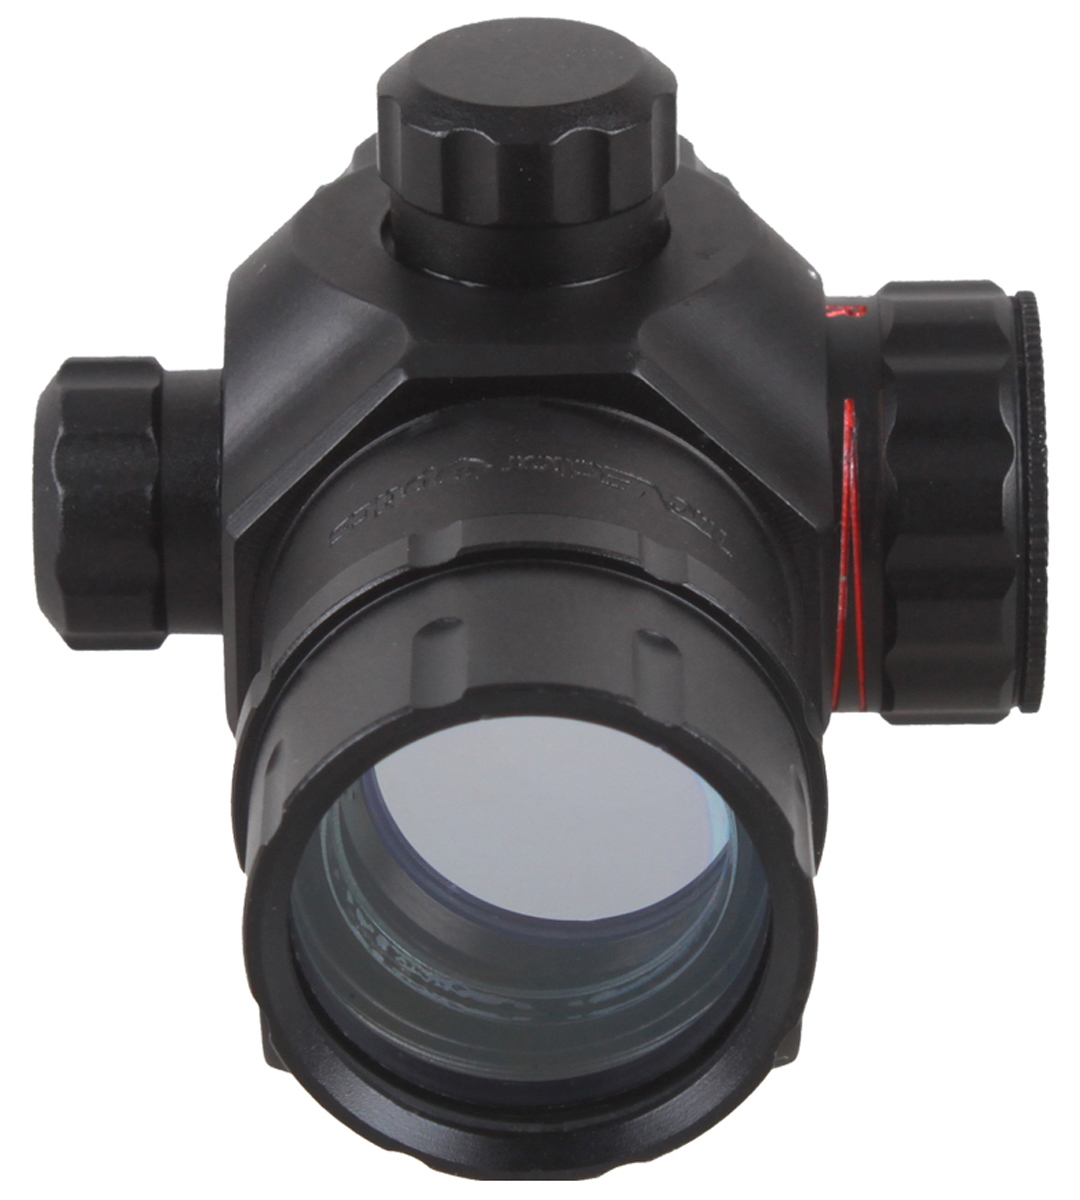 VO Harrier 1x20 Red Dot Sight Acom 11.jpg